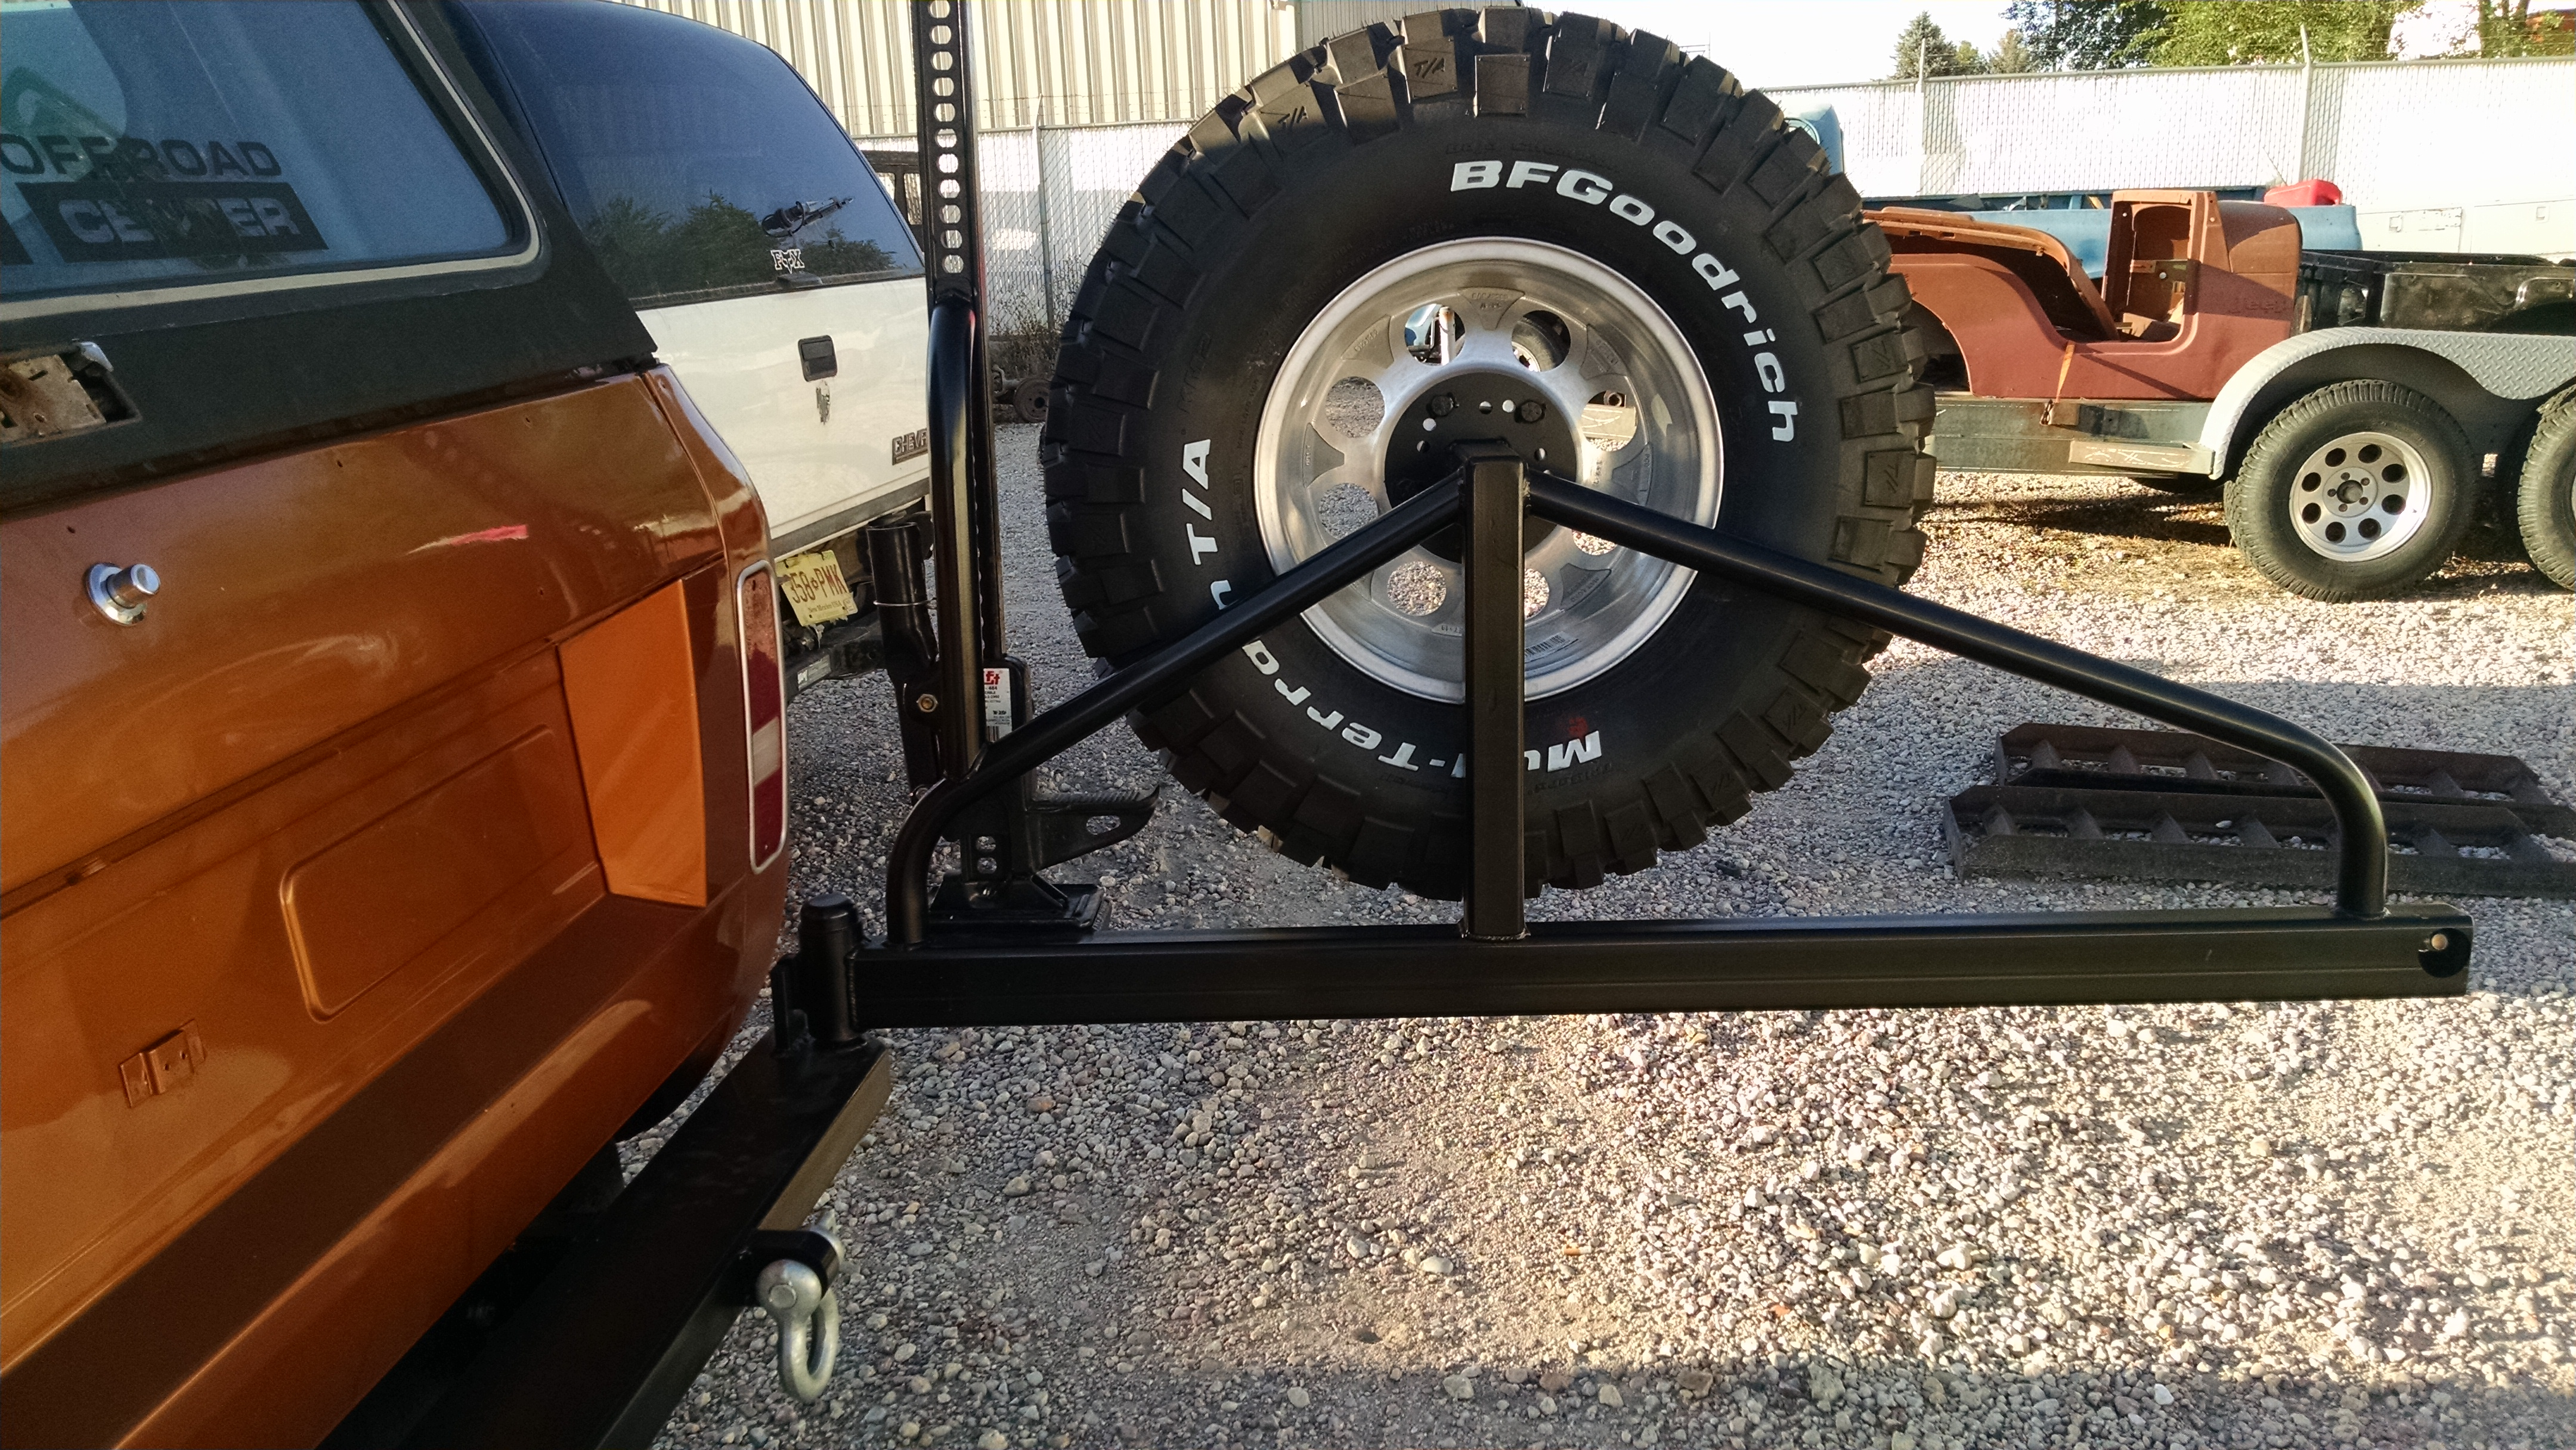 Scout Ii Rear Bumper With Tire Carrier D And C Extreme 1955 Ford F100 Spare